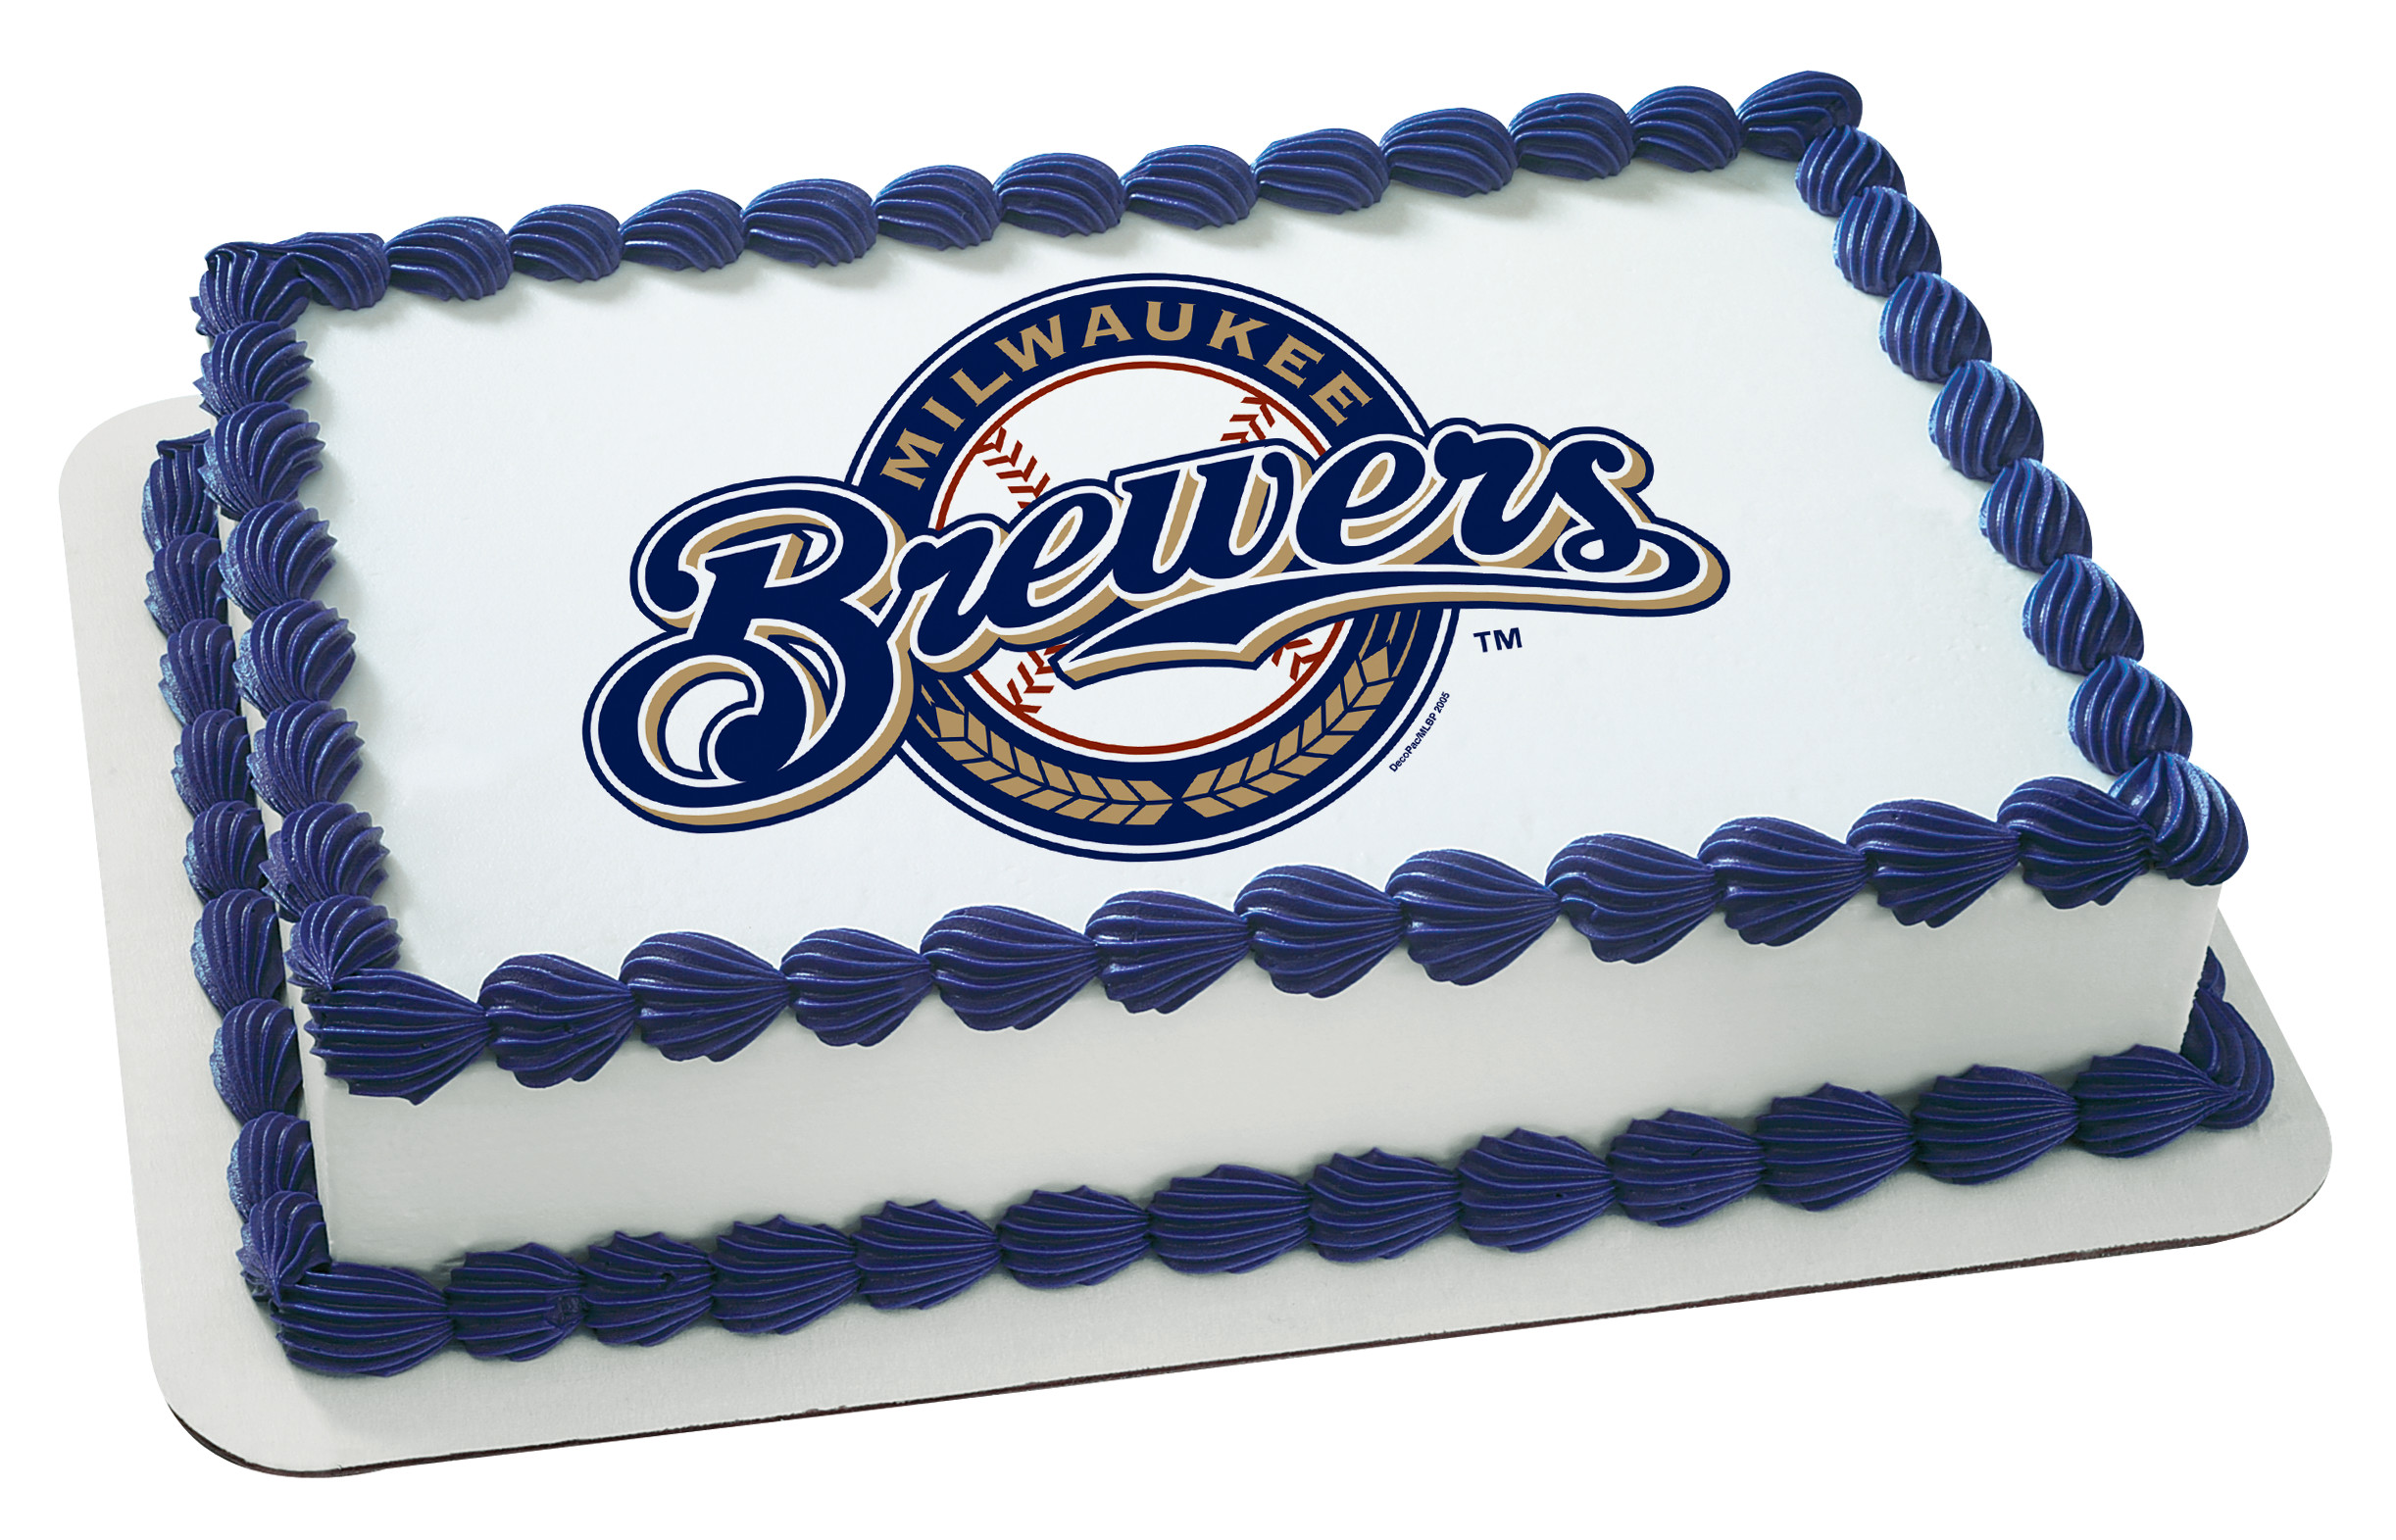 Mlb 174 Team Photocake 174 Edible Image 174 Decopac